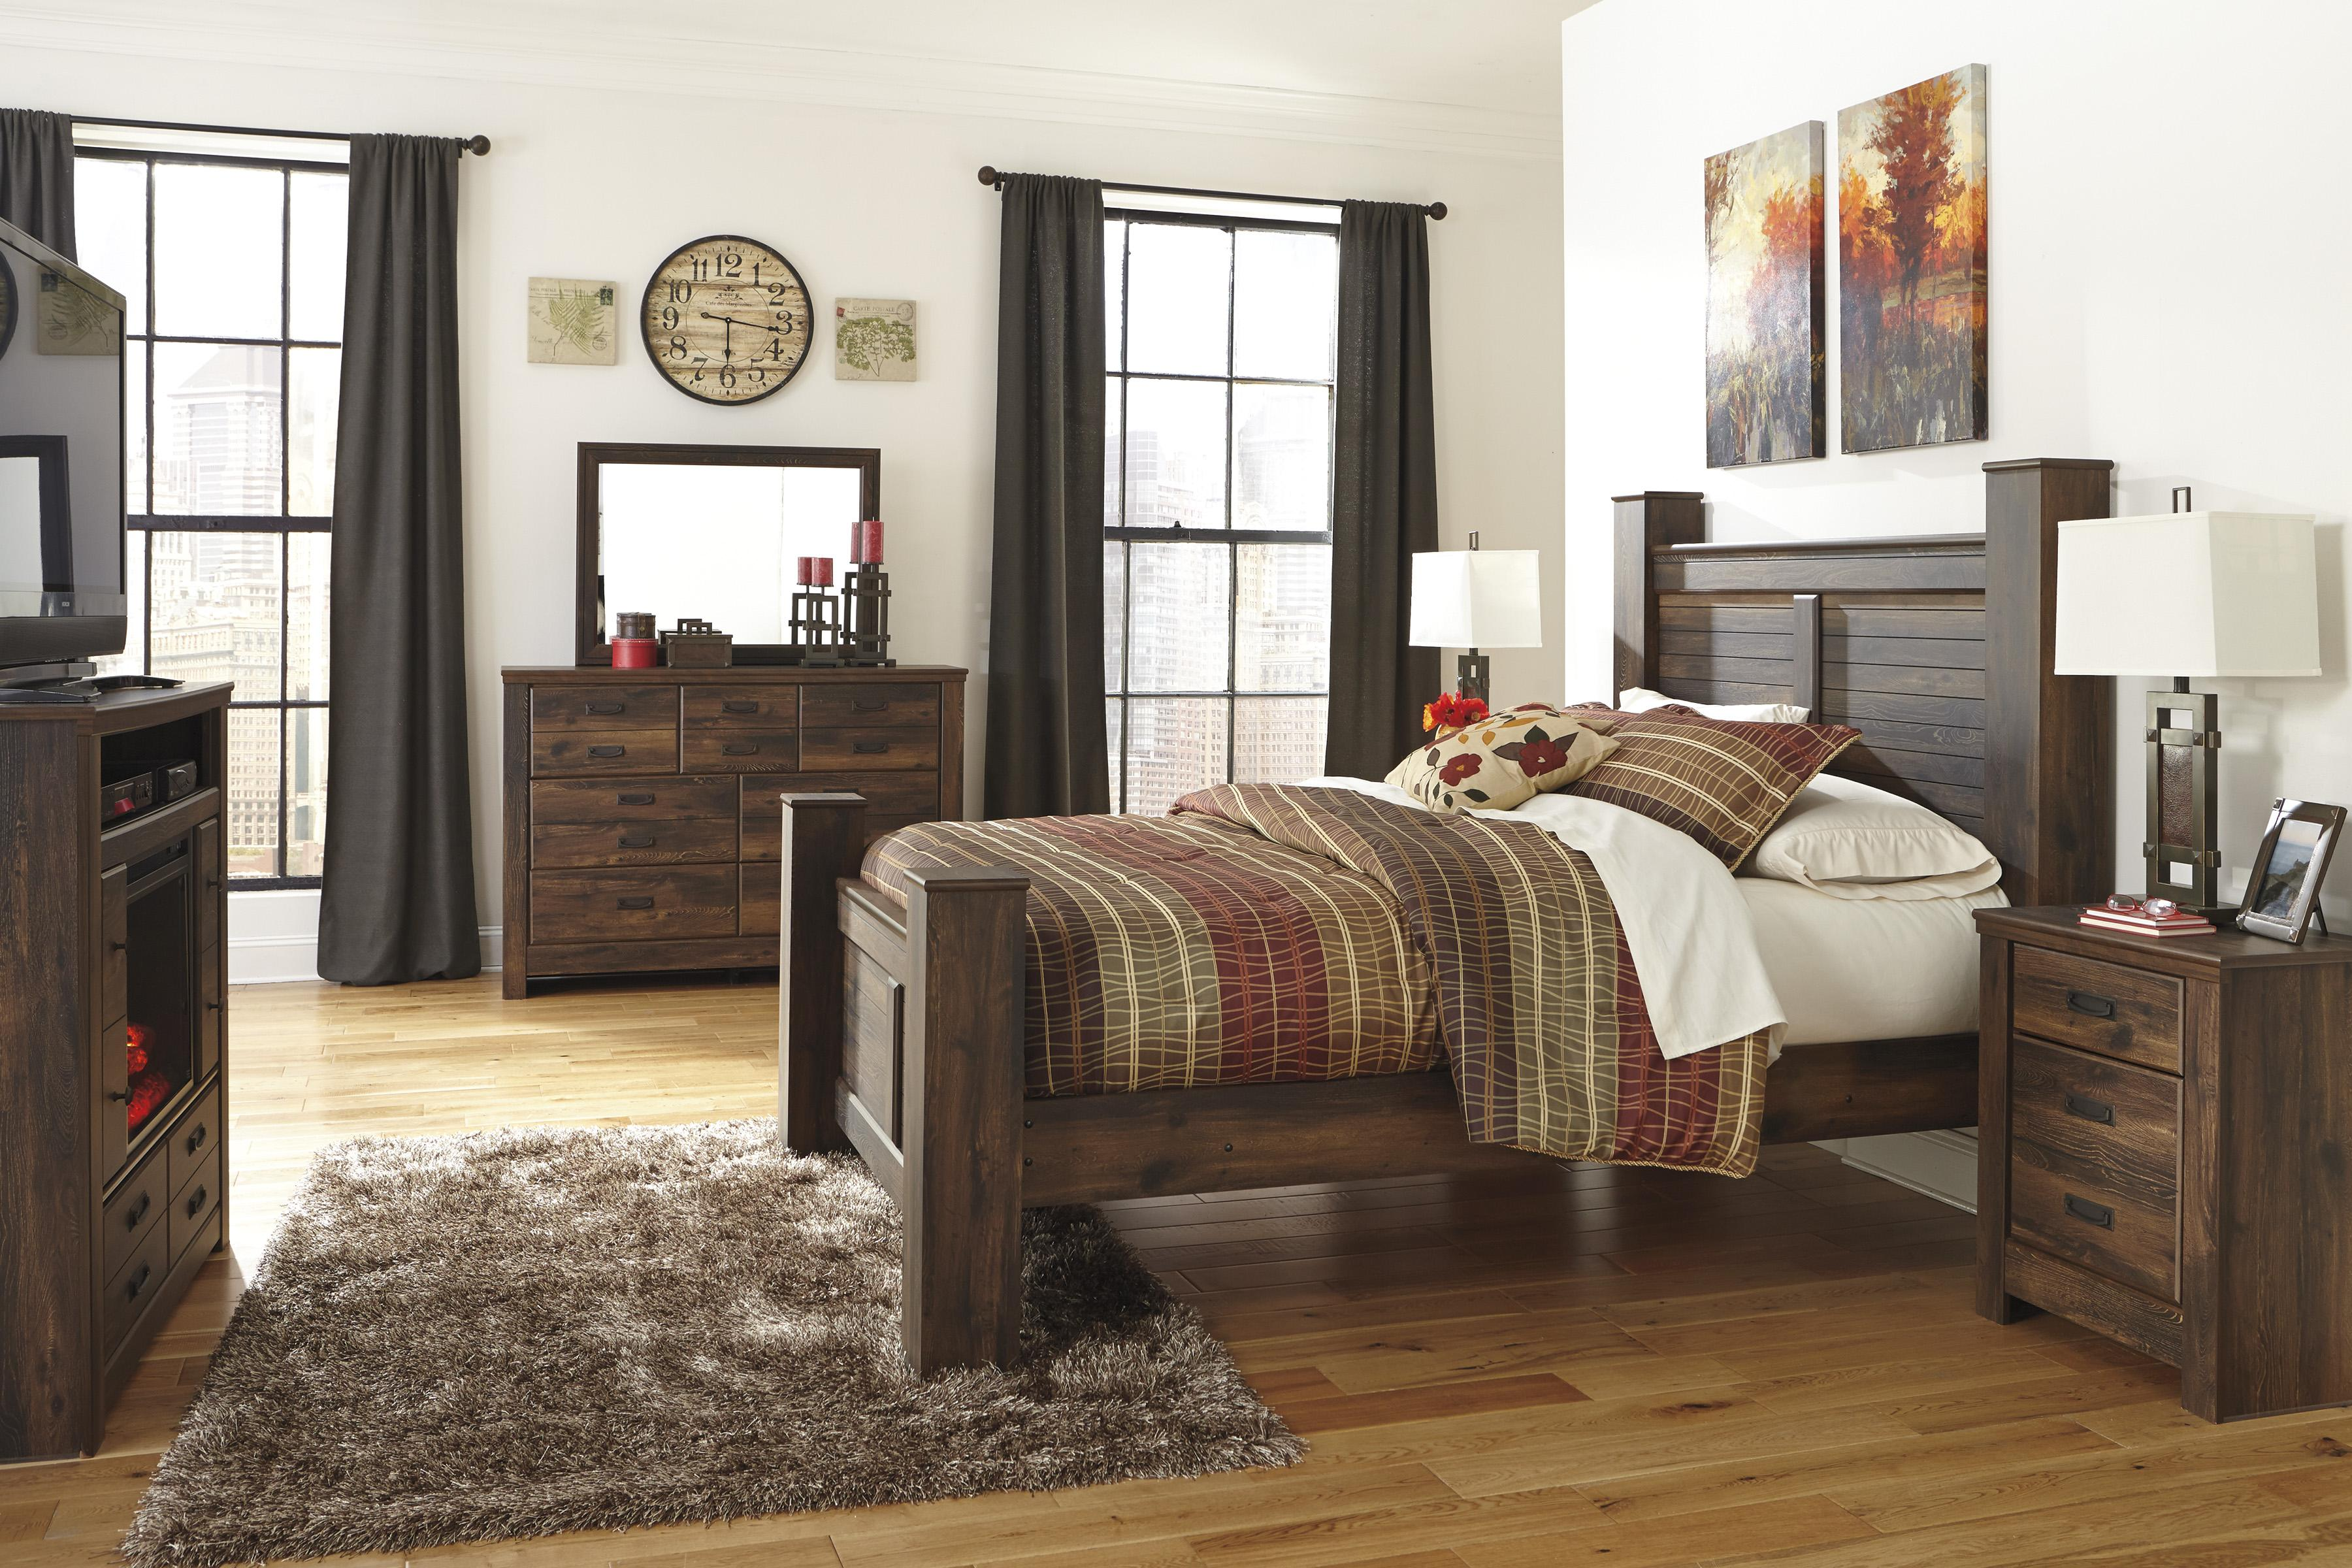 Signature Design by Ashley Quinden Queen Bedroom Group - Item Number: B246 Q Bedroom Group 6